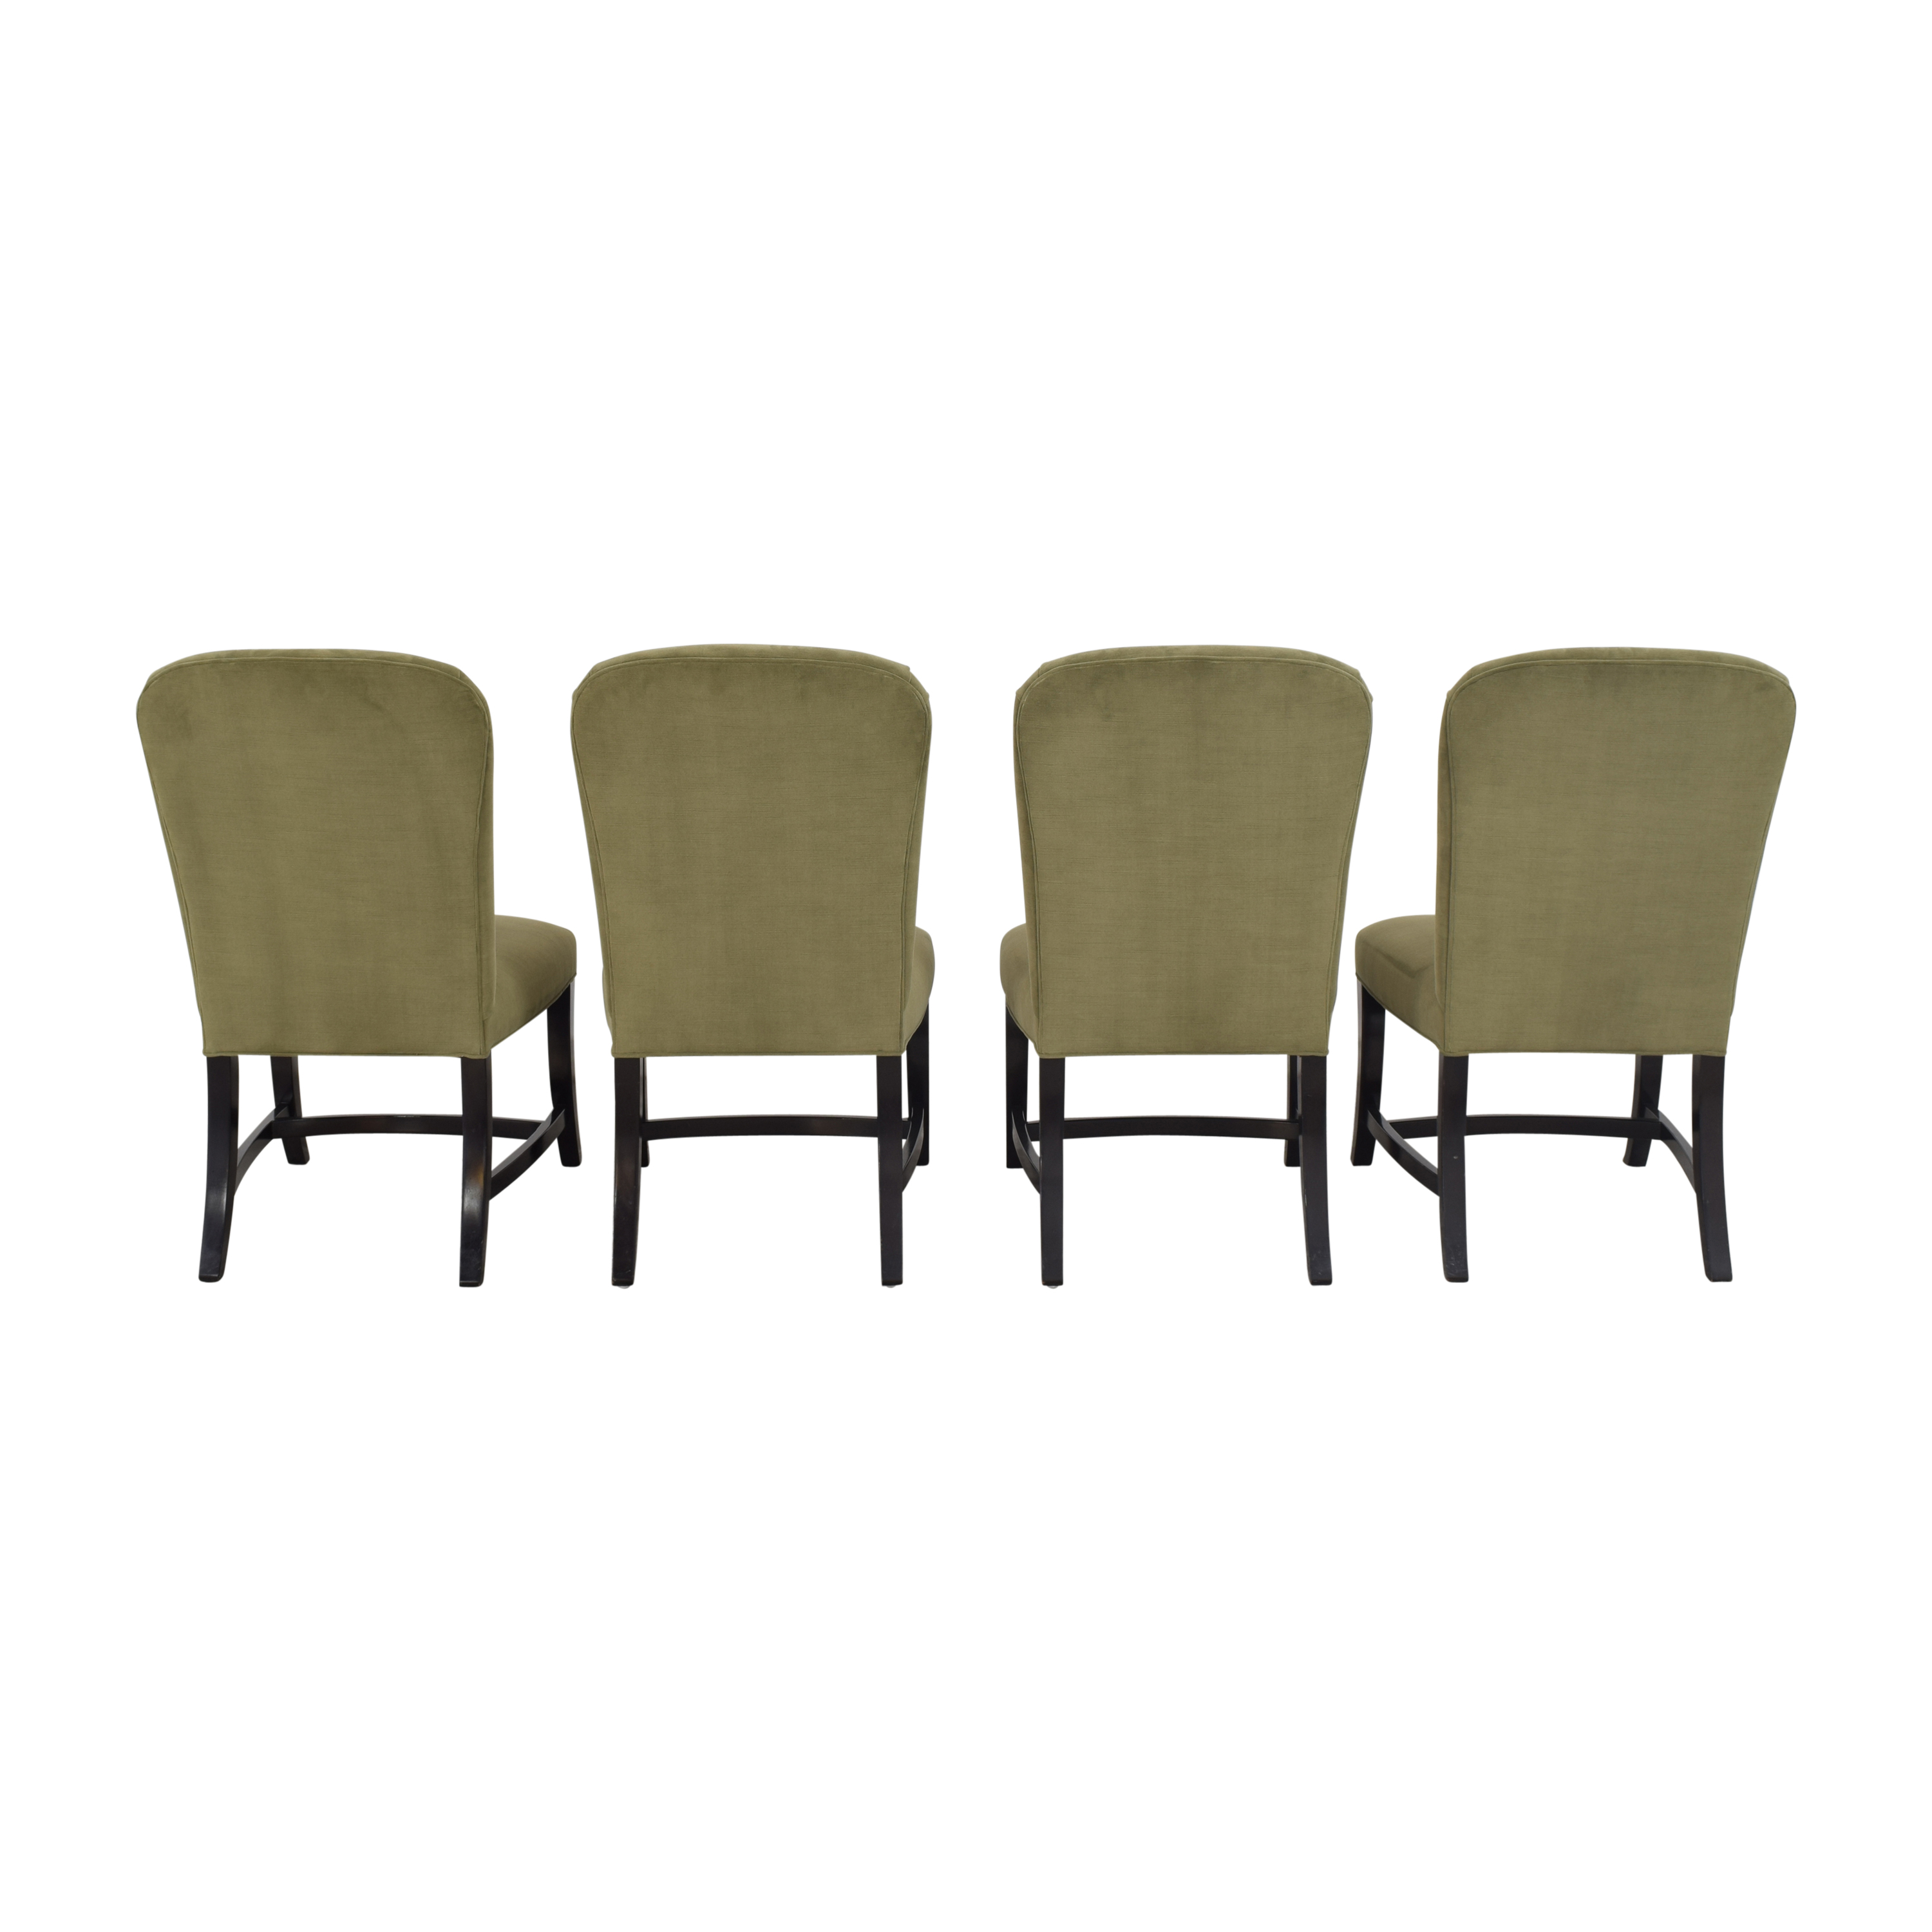 Drexel Heritage Drexel Heritage Upholstered Dining Chairs ma